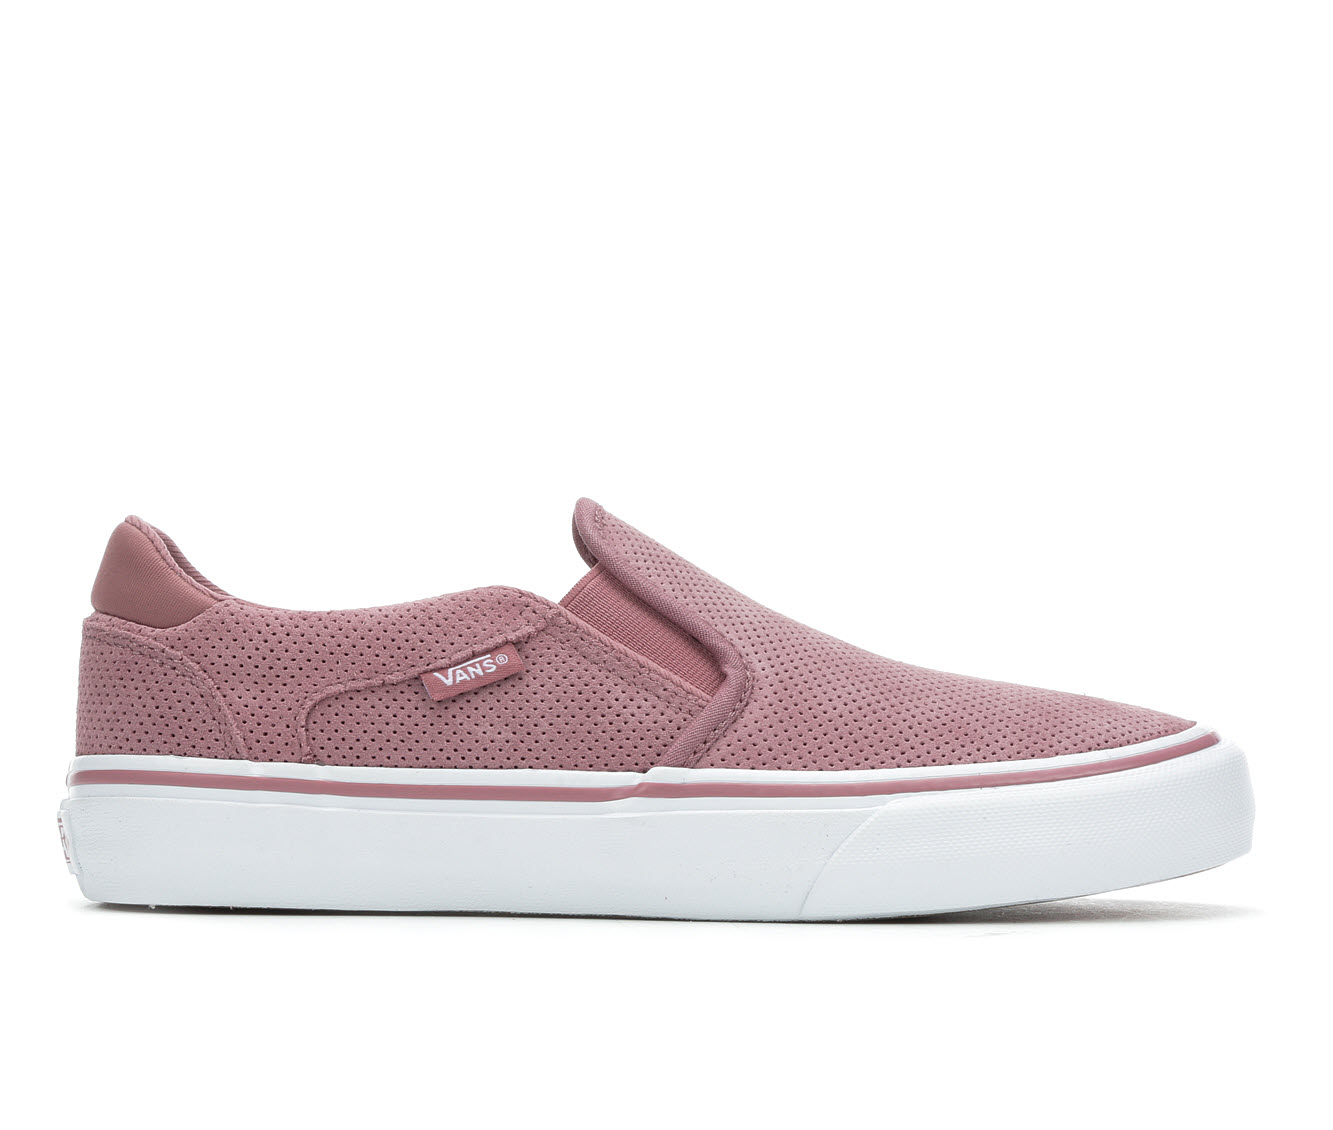 Vans Asher Deluxe Women's Athletic Shoe (Pink)